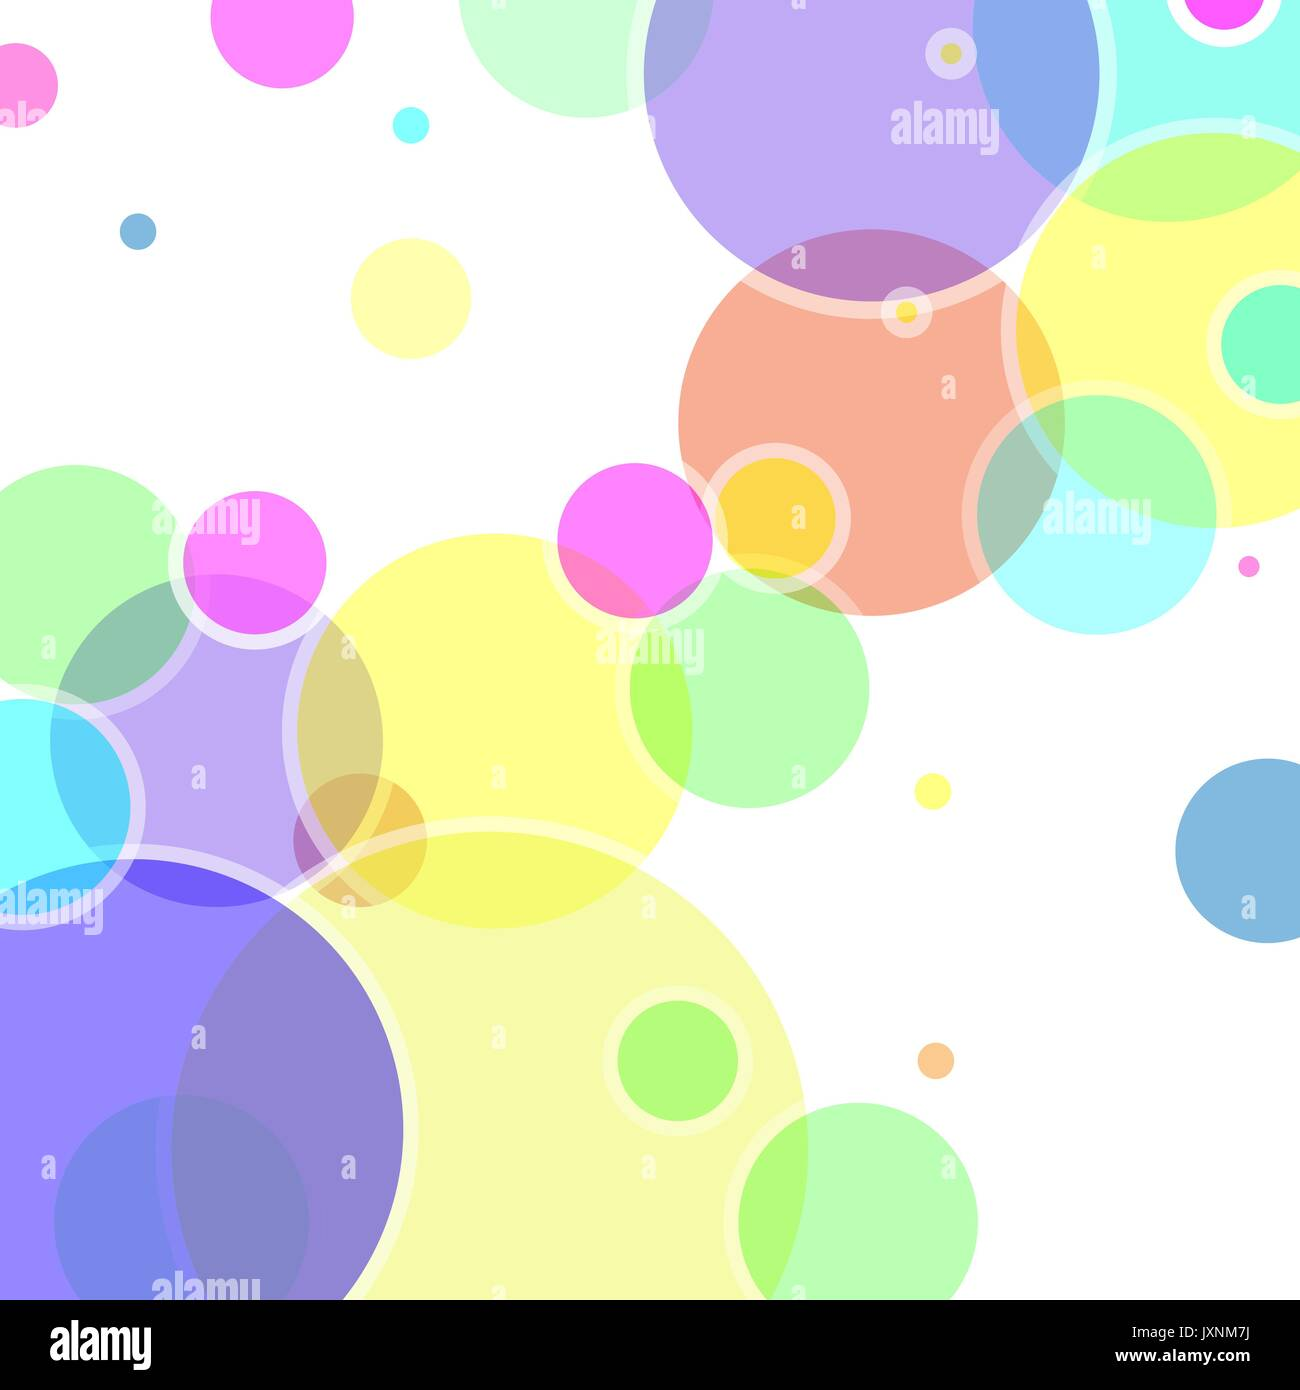 Abstract vector with colorful bubble elements - Stock Image